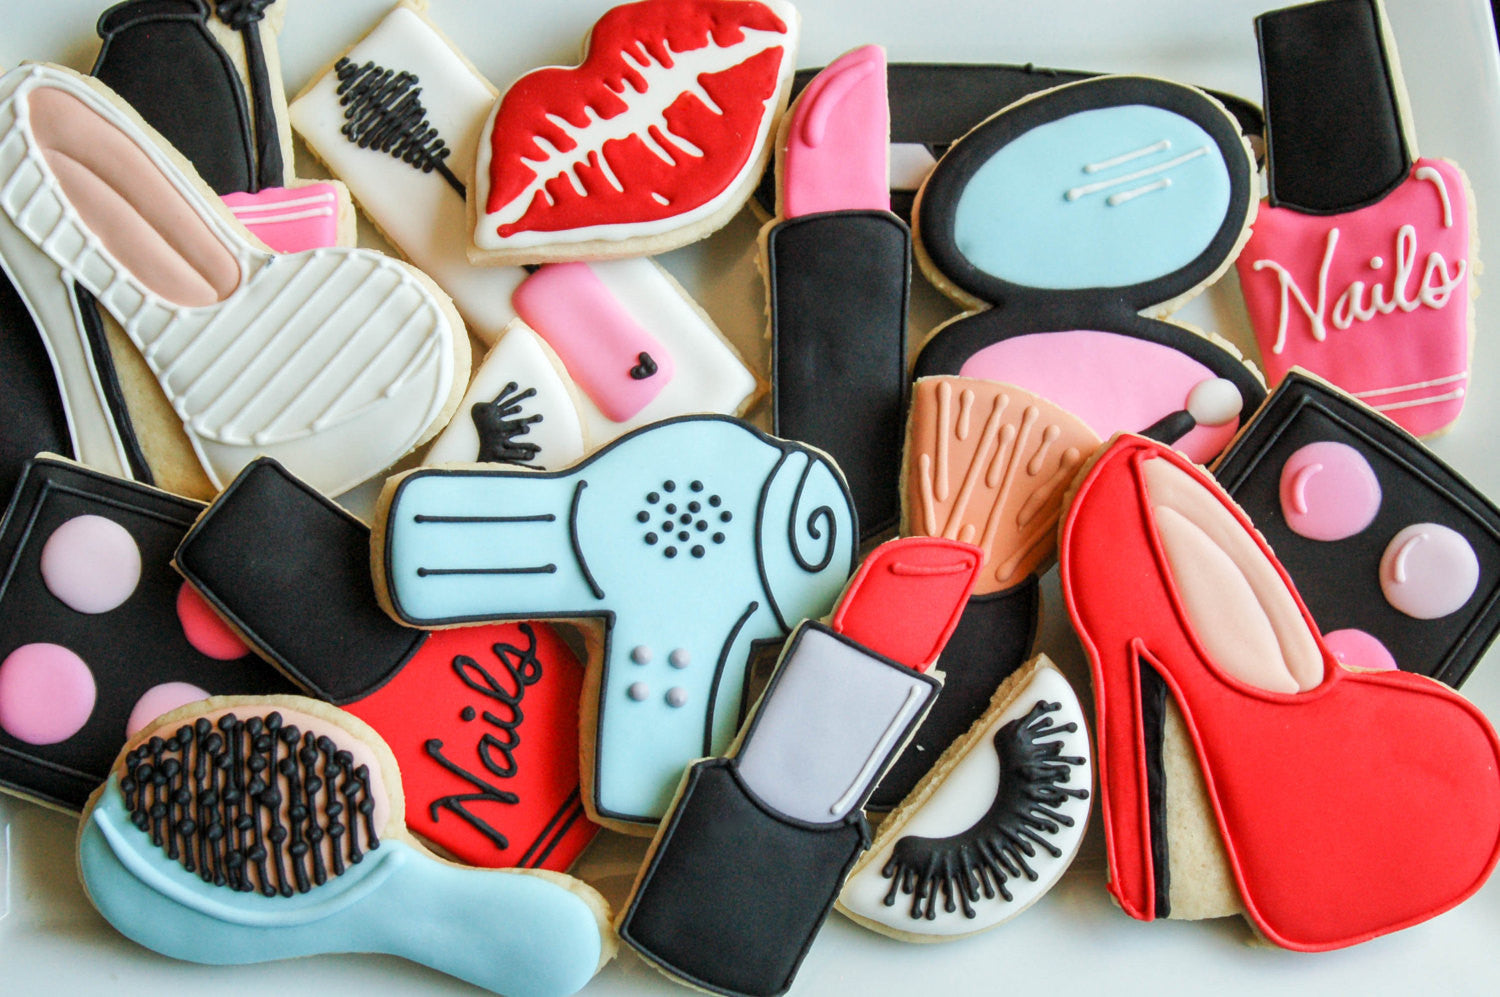 Makeup Set Birthday Party Sugar Cookies